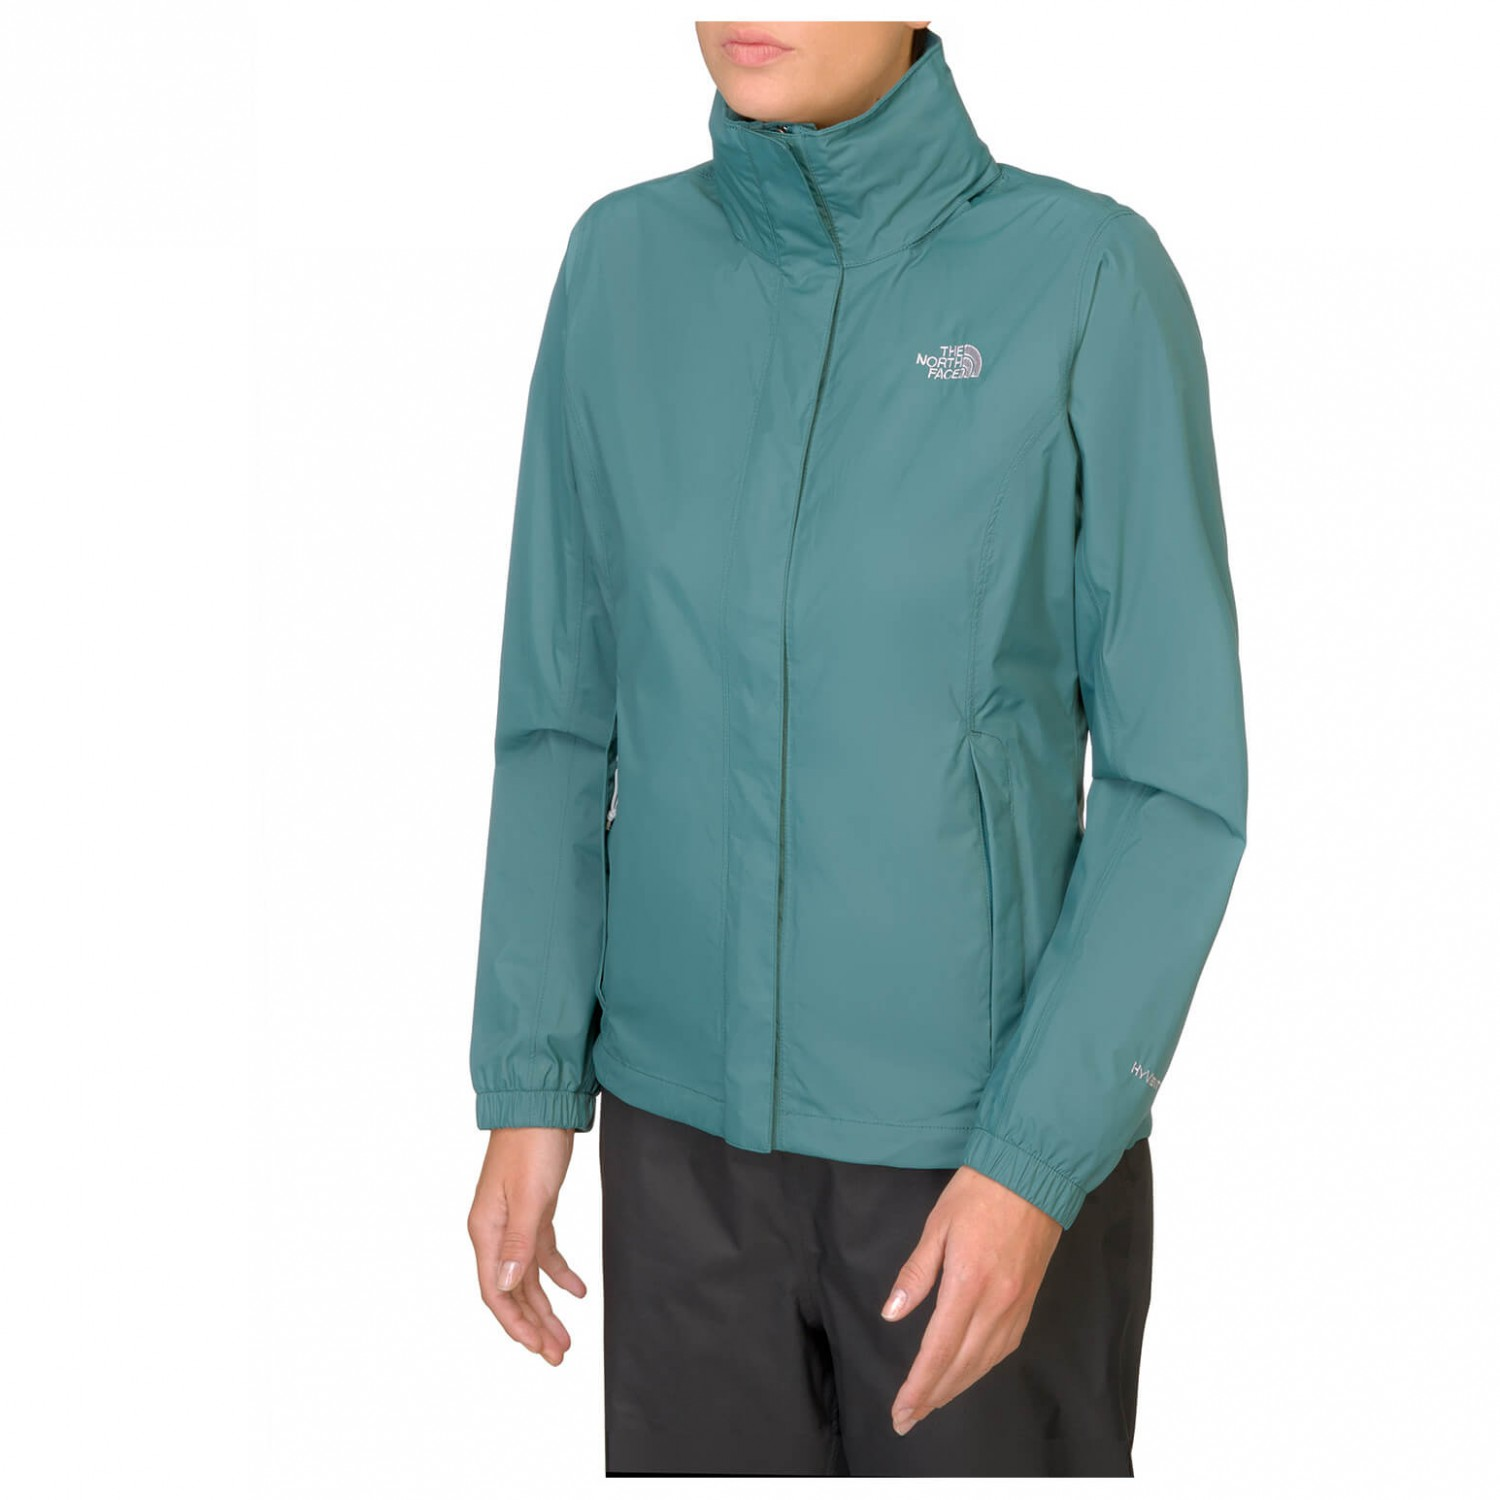 c33e40b4a110 ... The North Face - Women s Resolve Jacket - Waterproof jacket ...